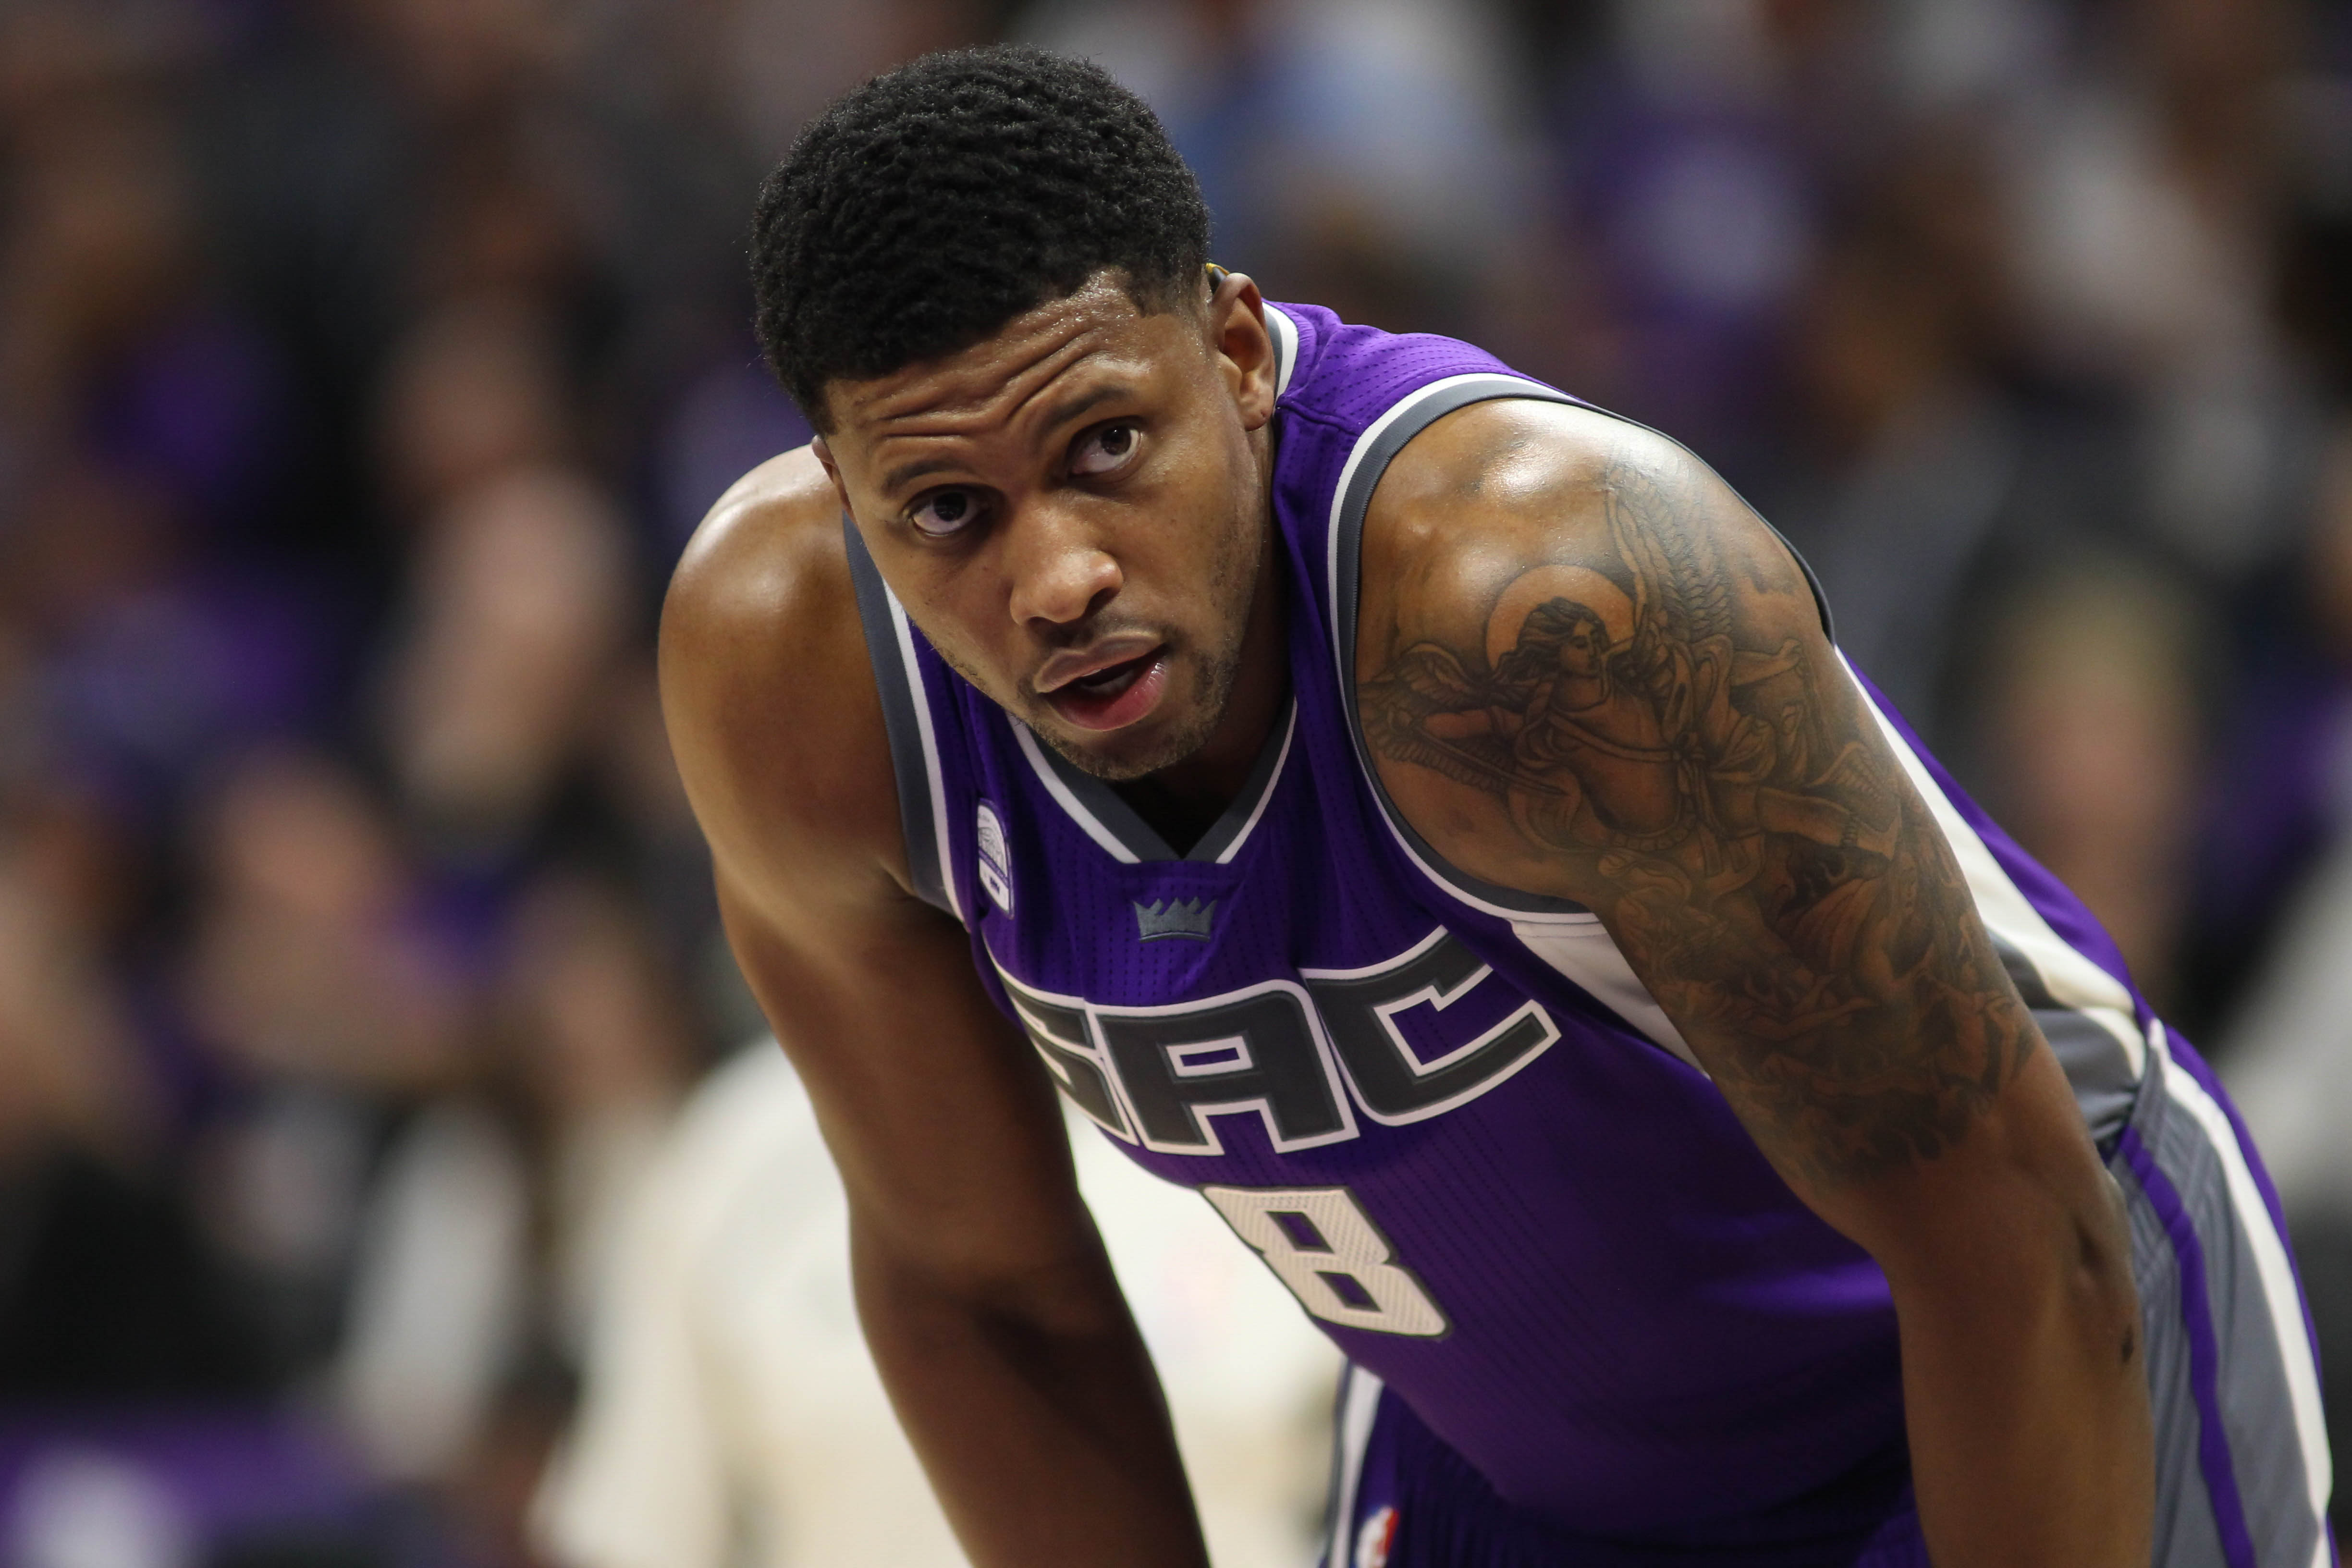 Why Rudy Gay Will Still Leave The Kings, Even With His Recent Injury